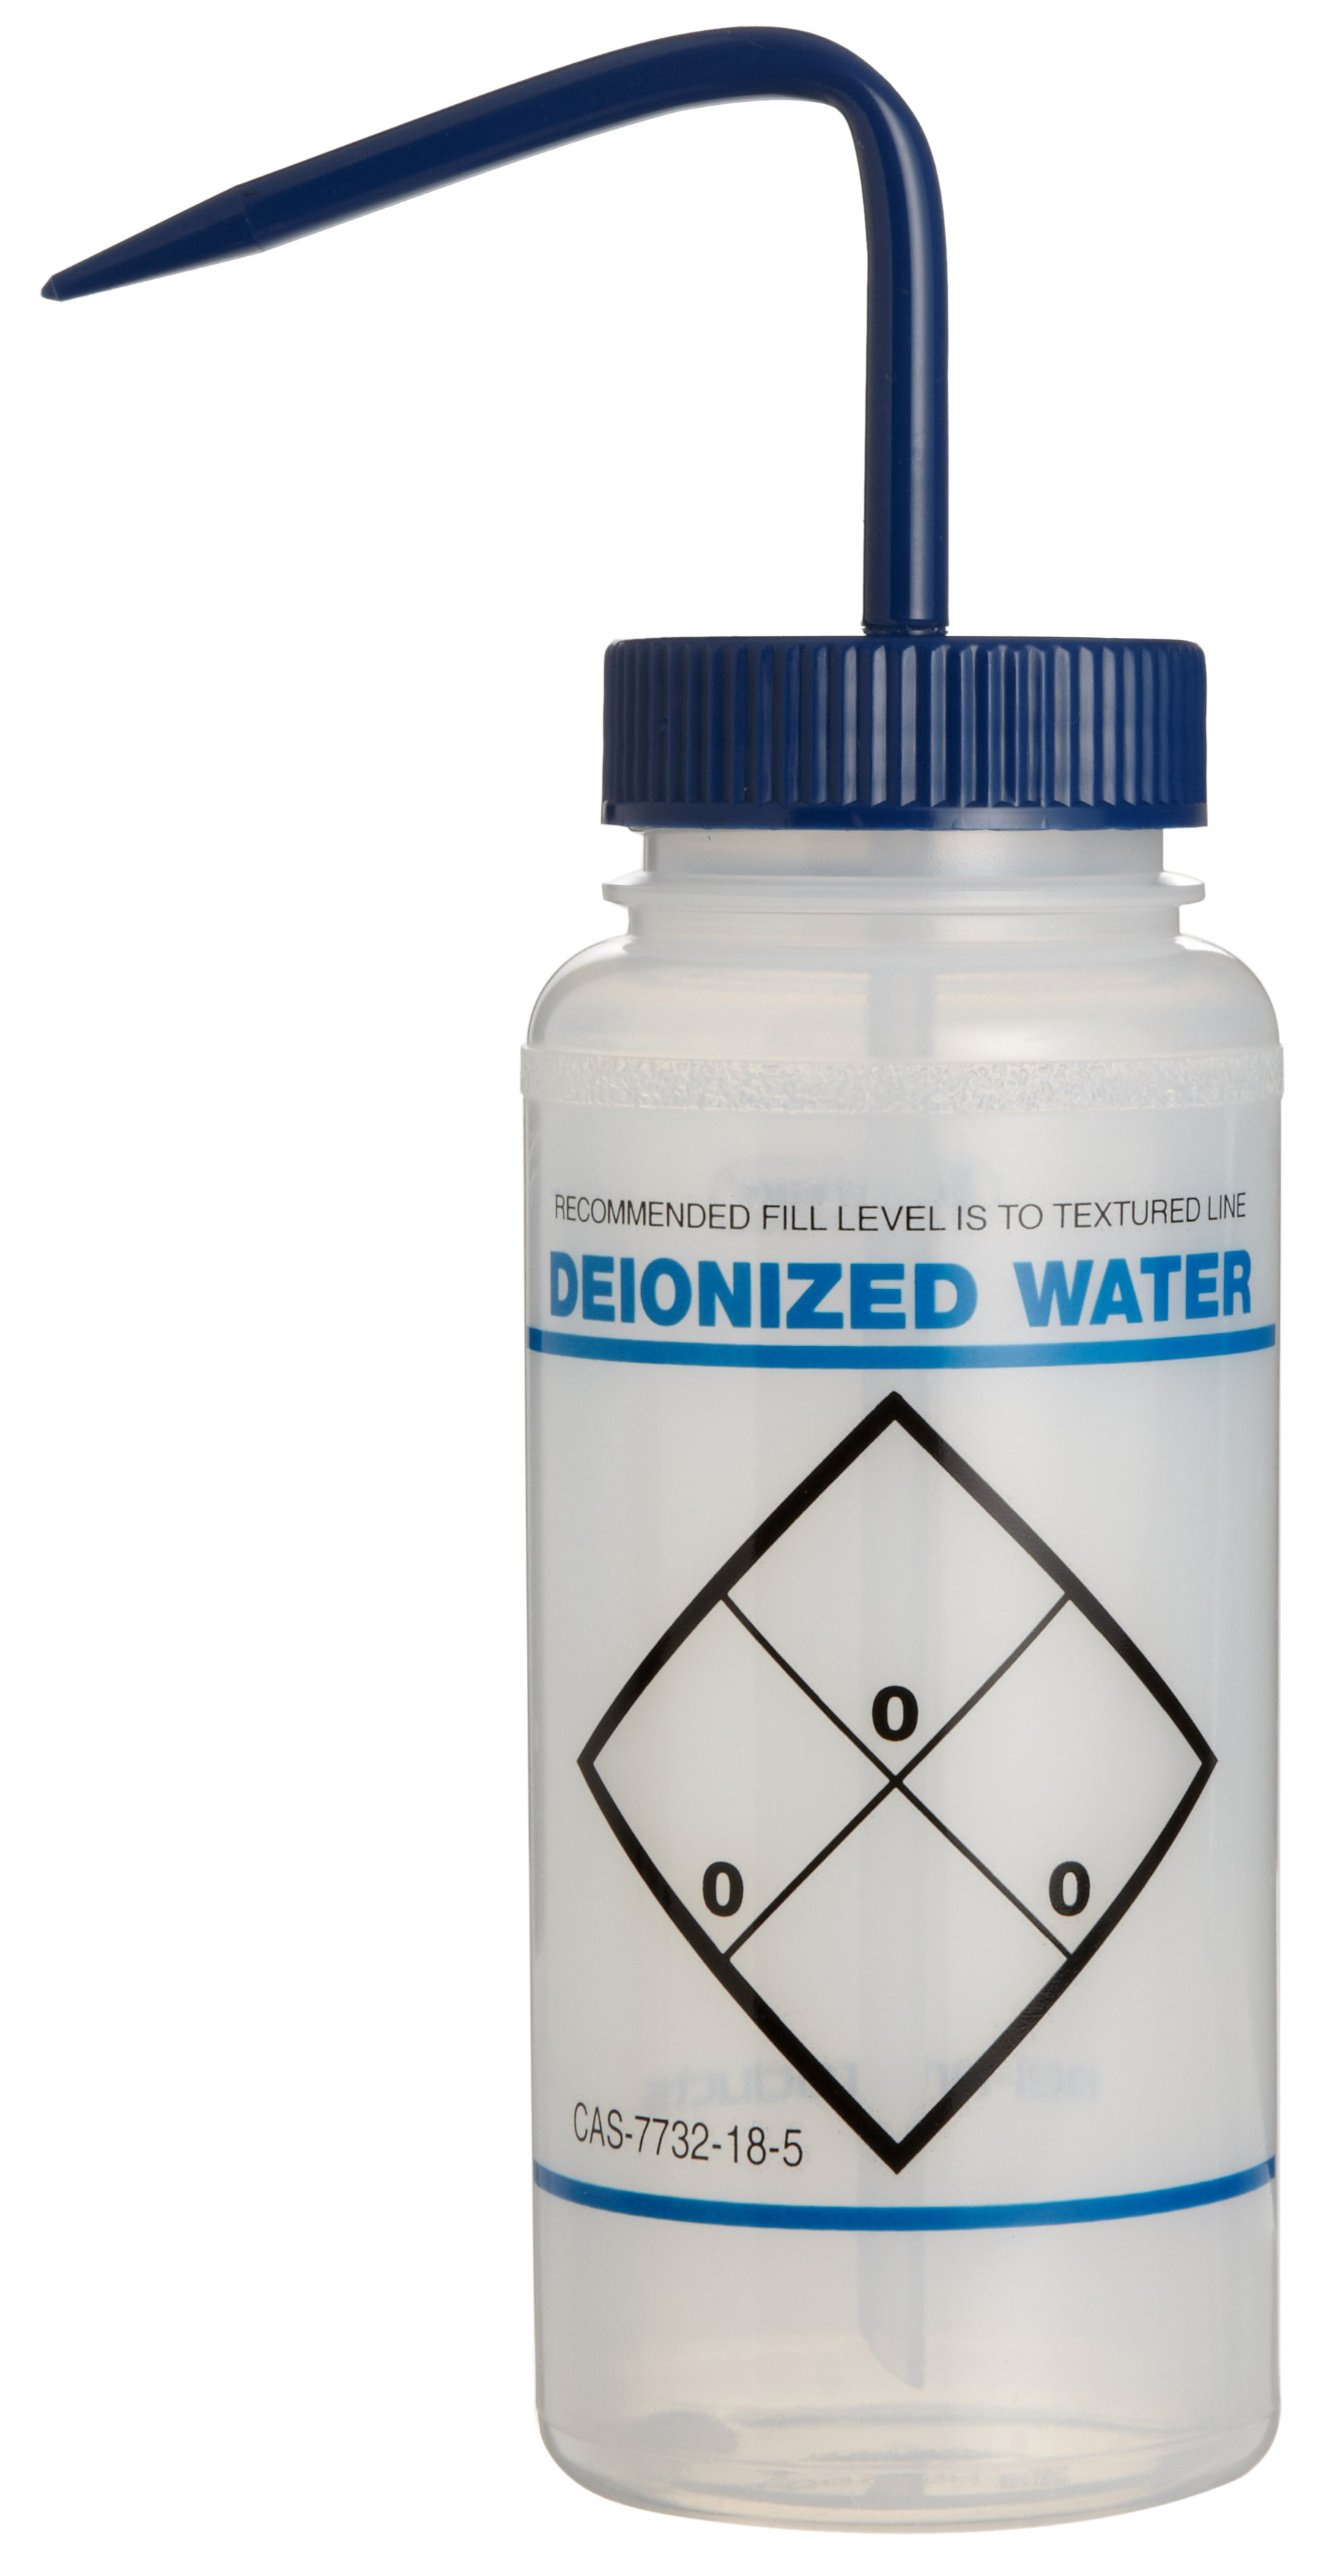 Bel-Art Safety-Labeled 2-Color Deionized Water Wide-Mouth Wash Bottles; 500ml (16oz), Polyethylene w/Blue Polypropylene Cap (Pack of 6) (F11646-0631) by SP Scienceware